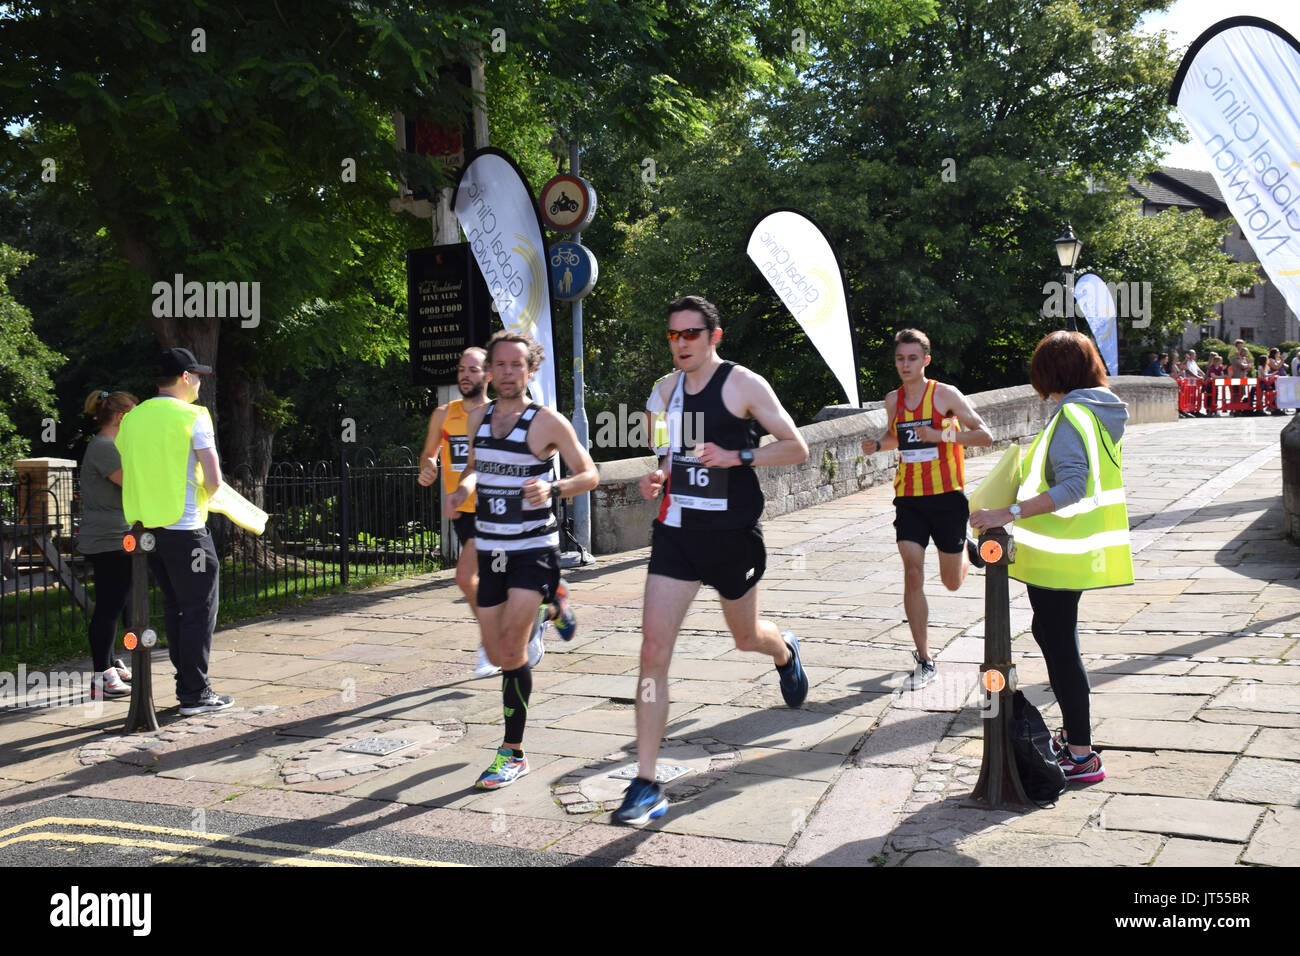 Norwich UK. 6th August 2017. 6000 people took part in the annual Run Norwich 10k road race organised by Norwich City FC Community Sports Foundation. - Stock Image